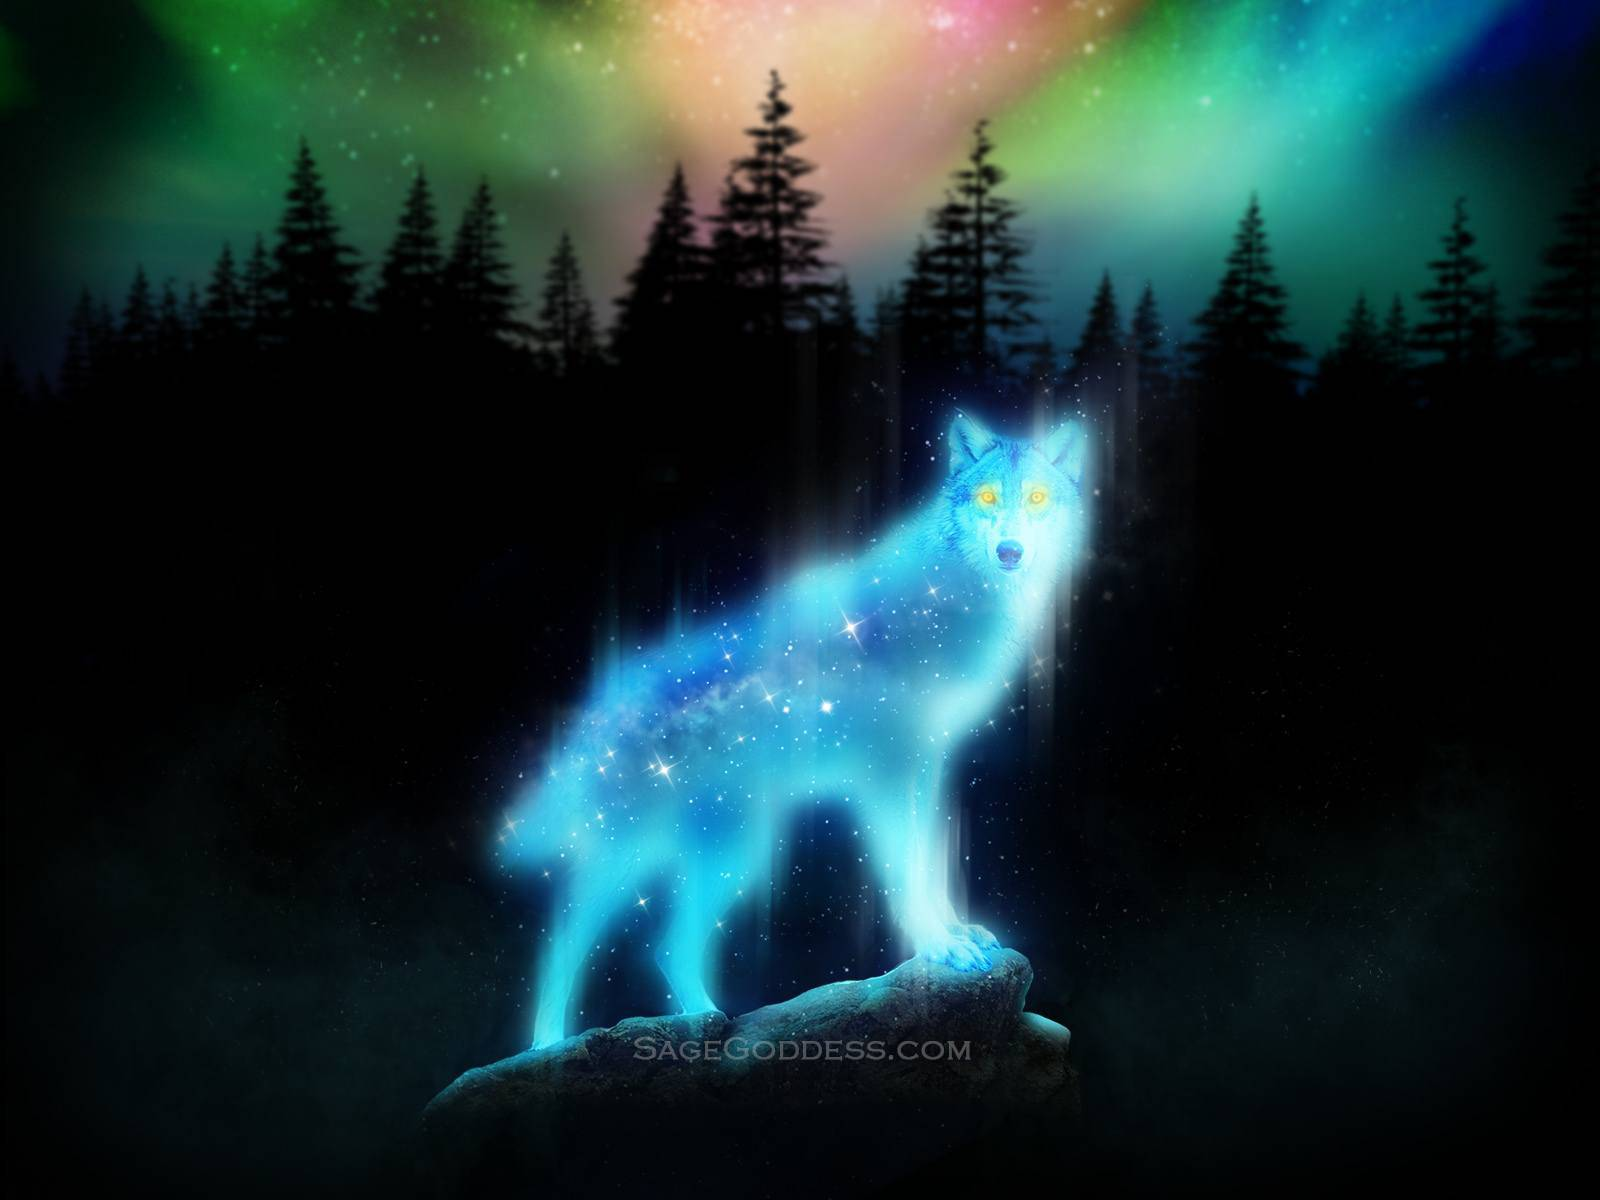 Free Custom Sage Goddess Downloadable Wolf Spirit Animal Wallpaper